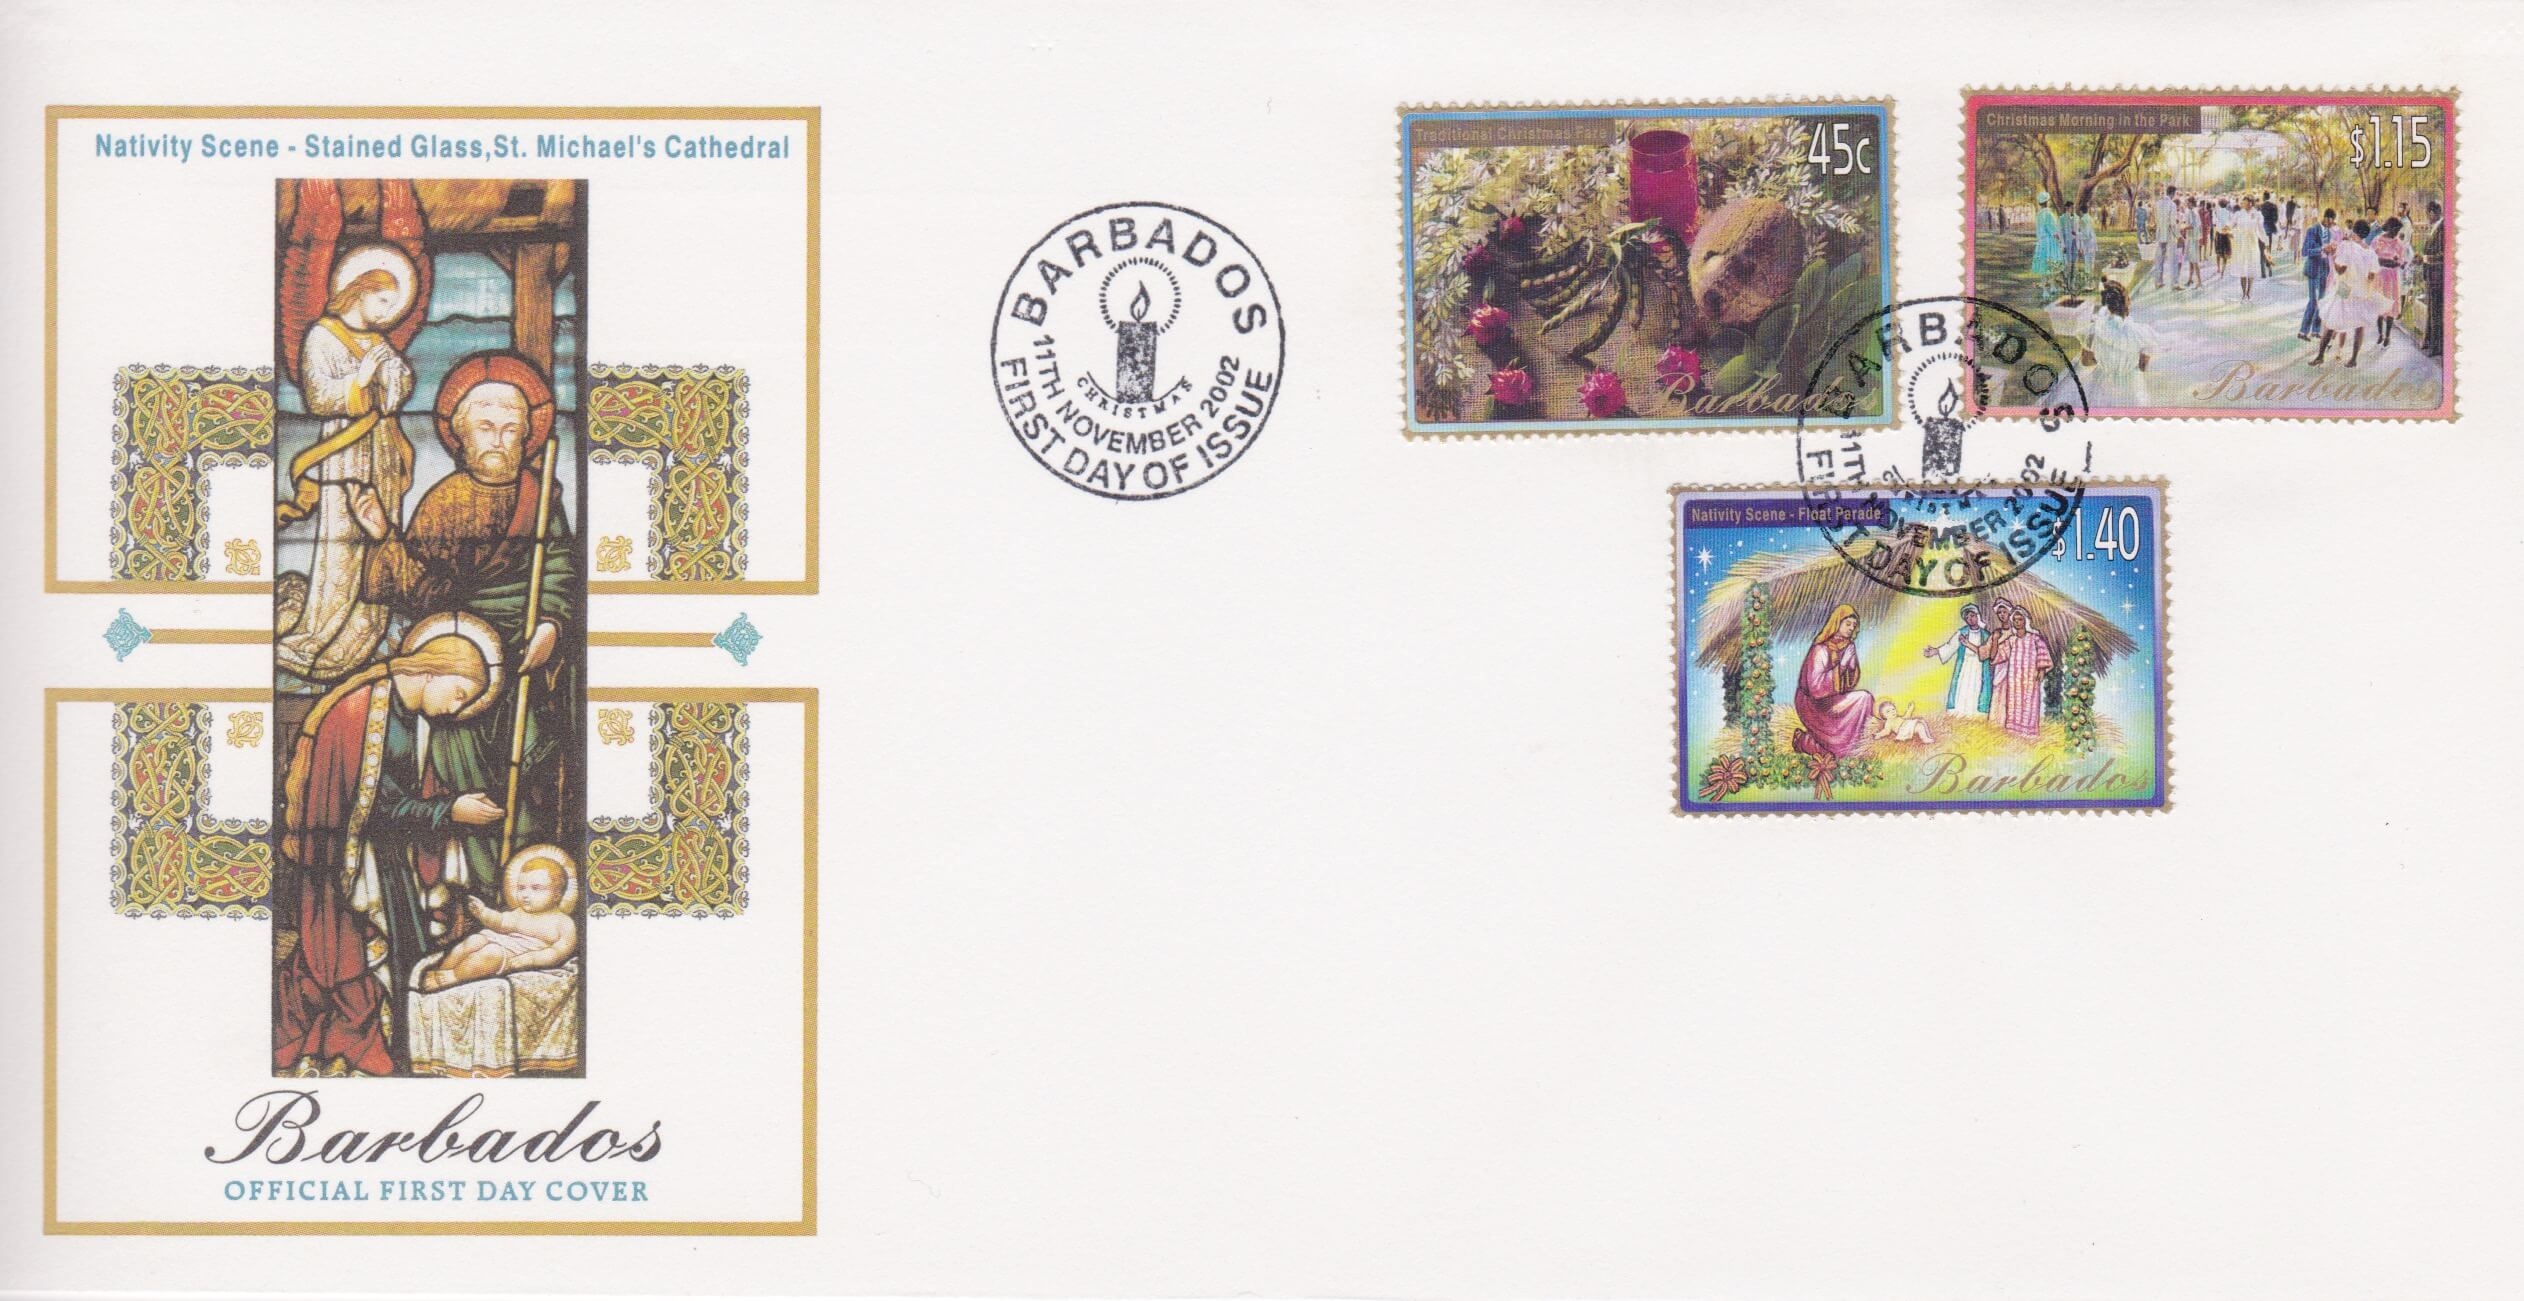 Barbados Christmas 2002 FDC